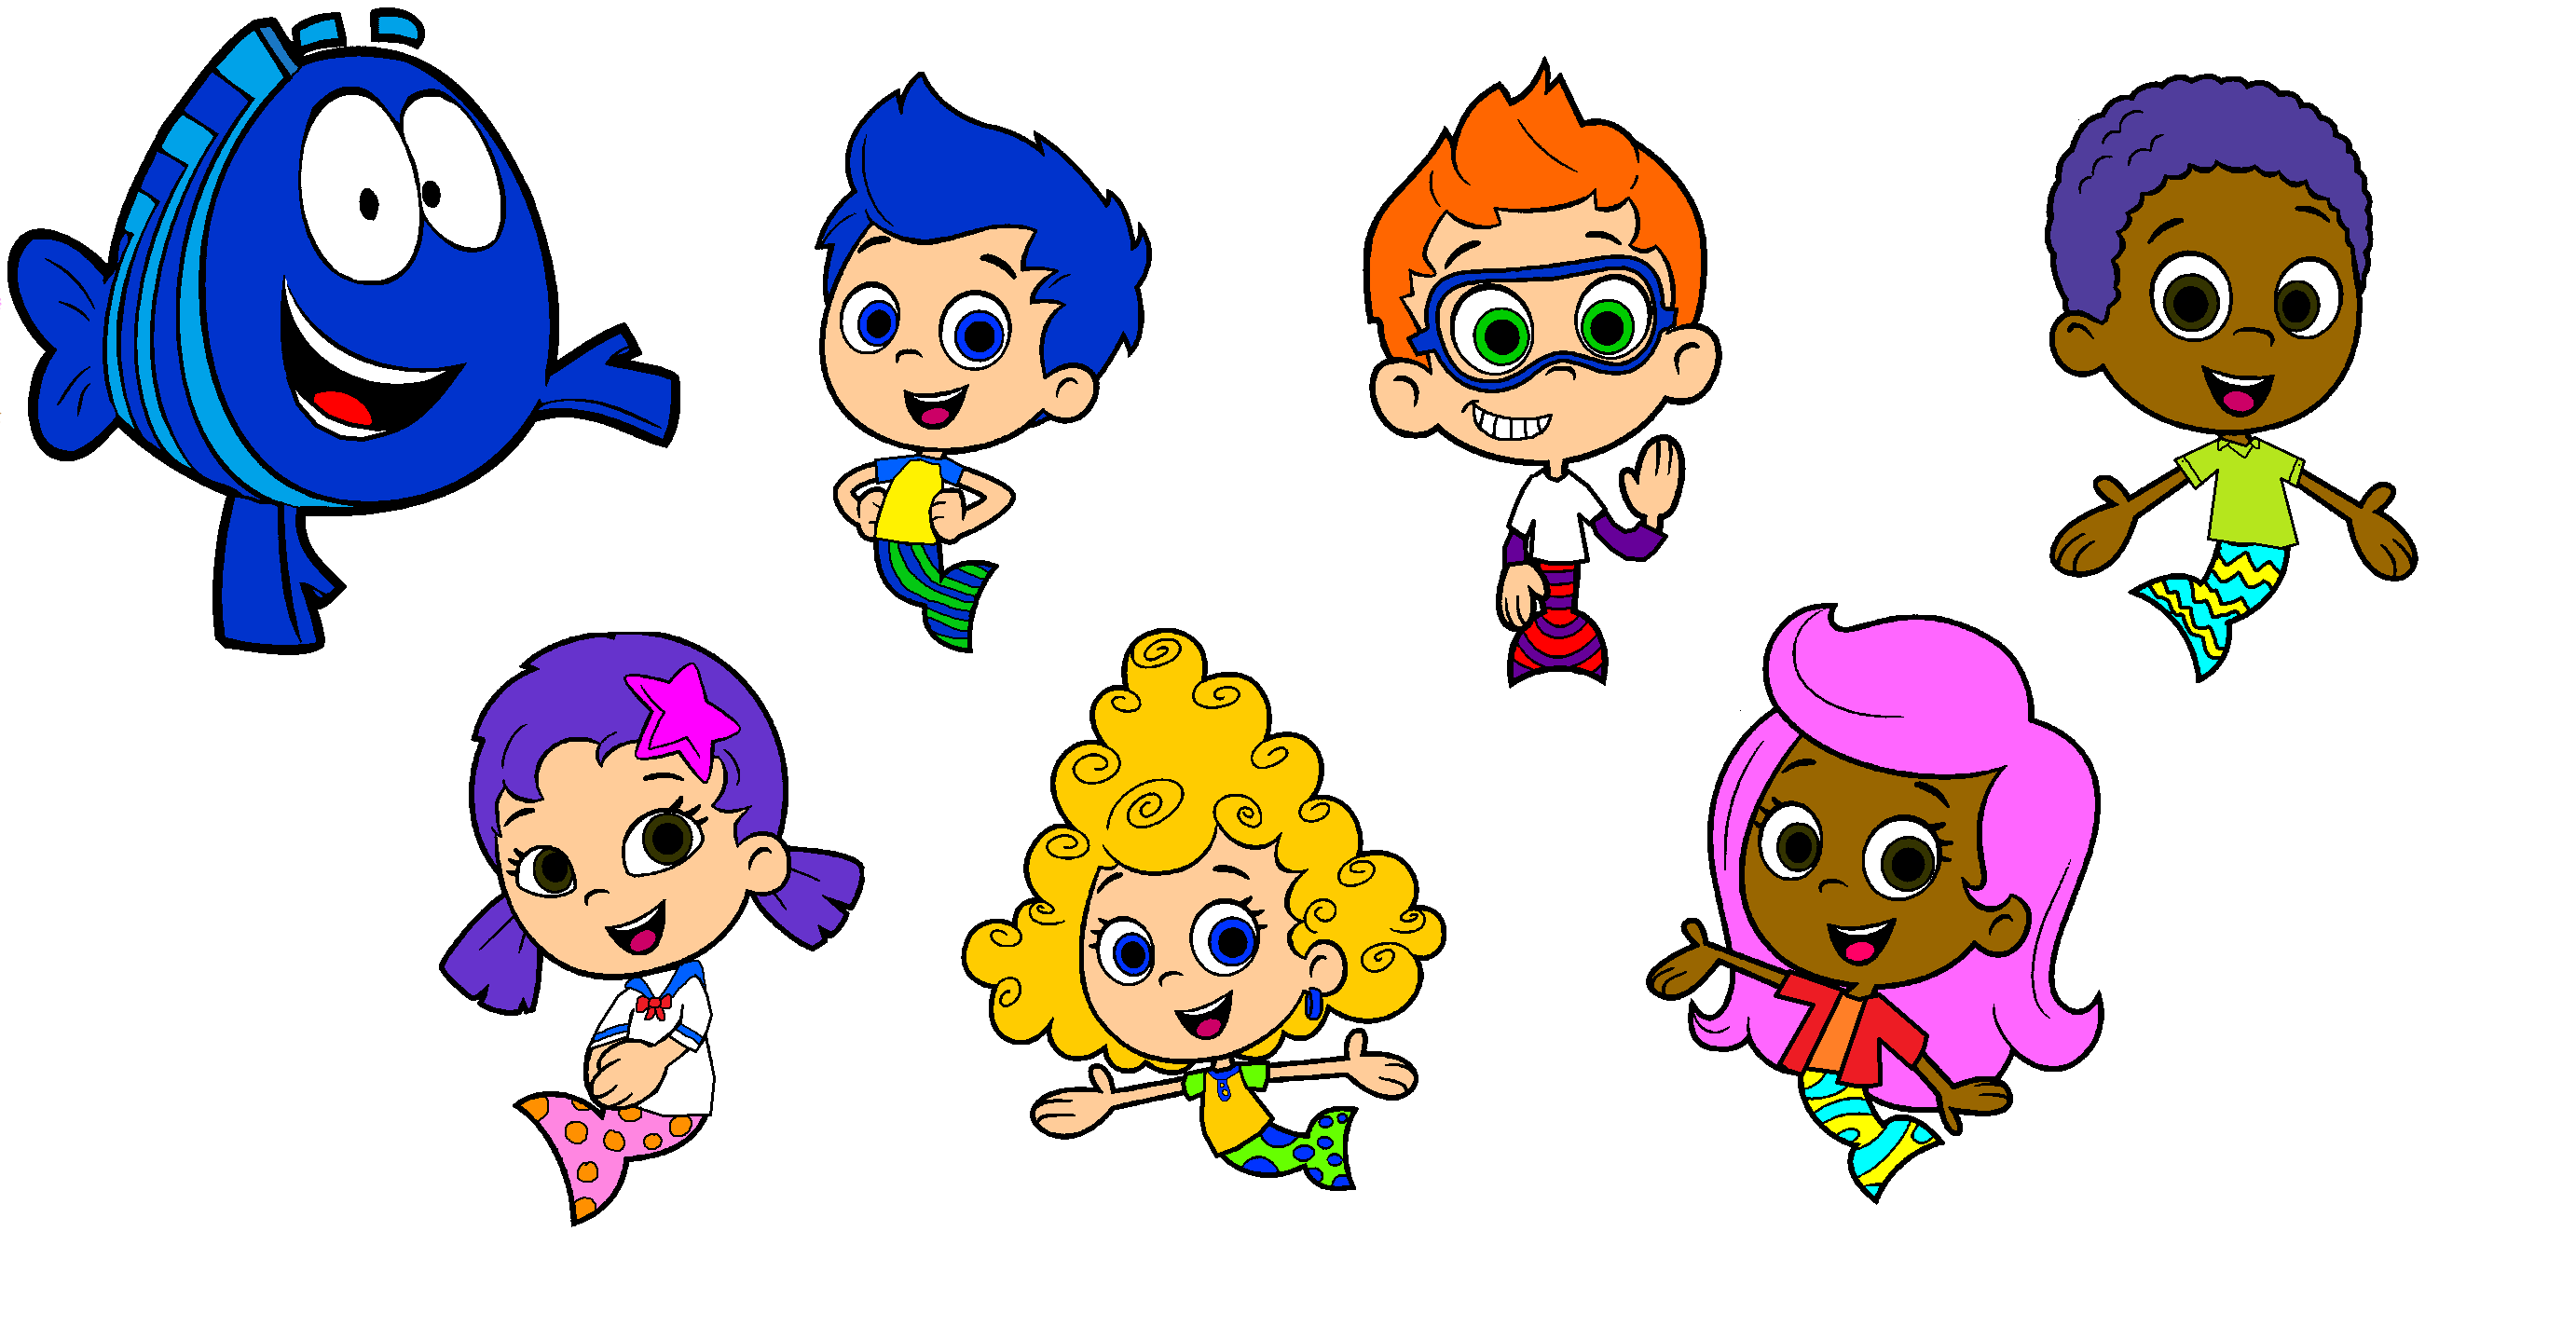 Bubble Guppies 9 Cast Images – Dibujos Para Colorear